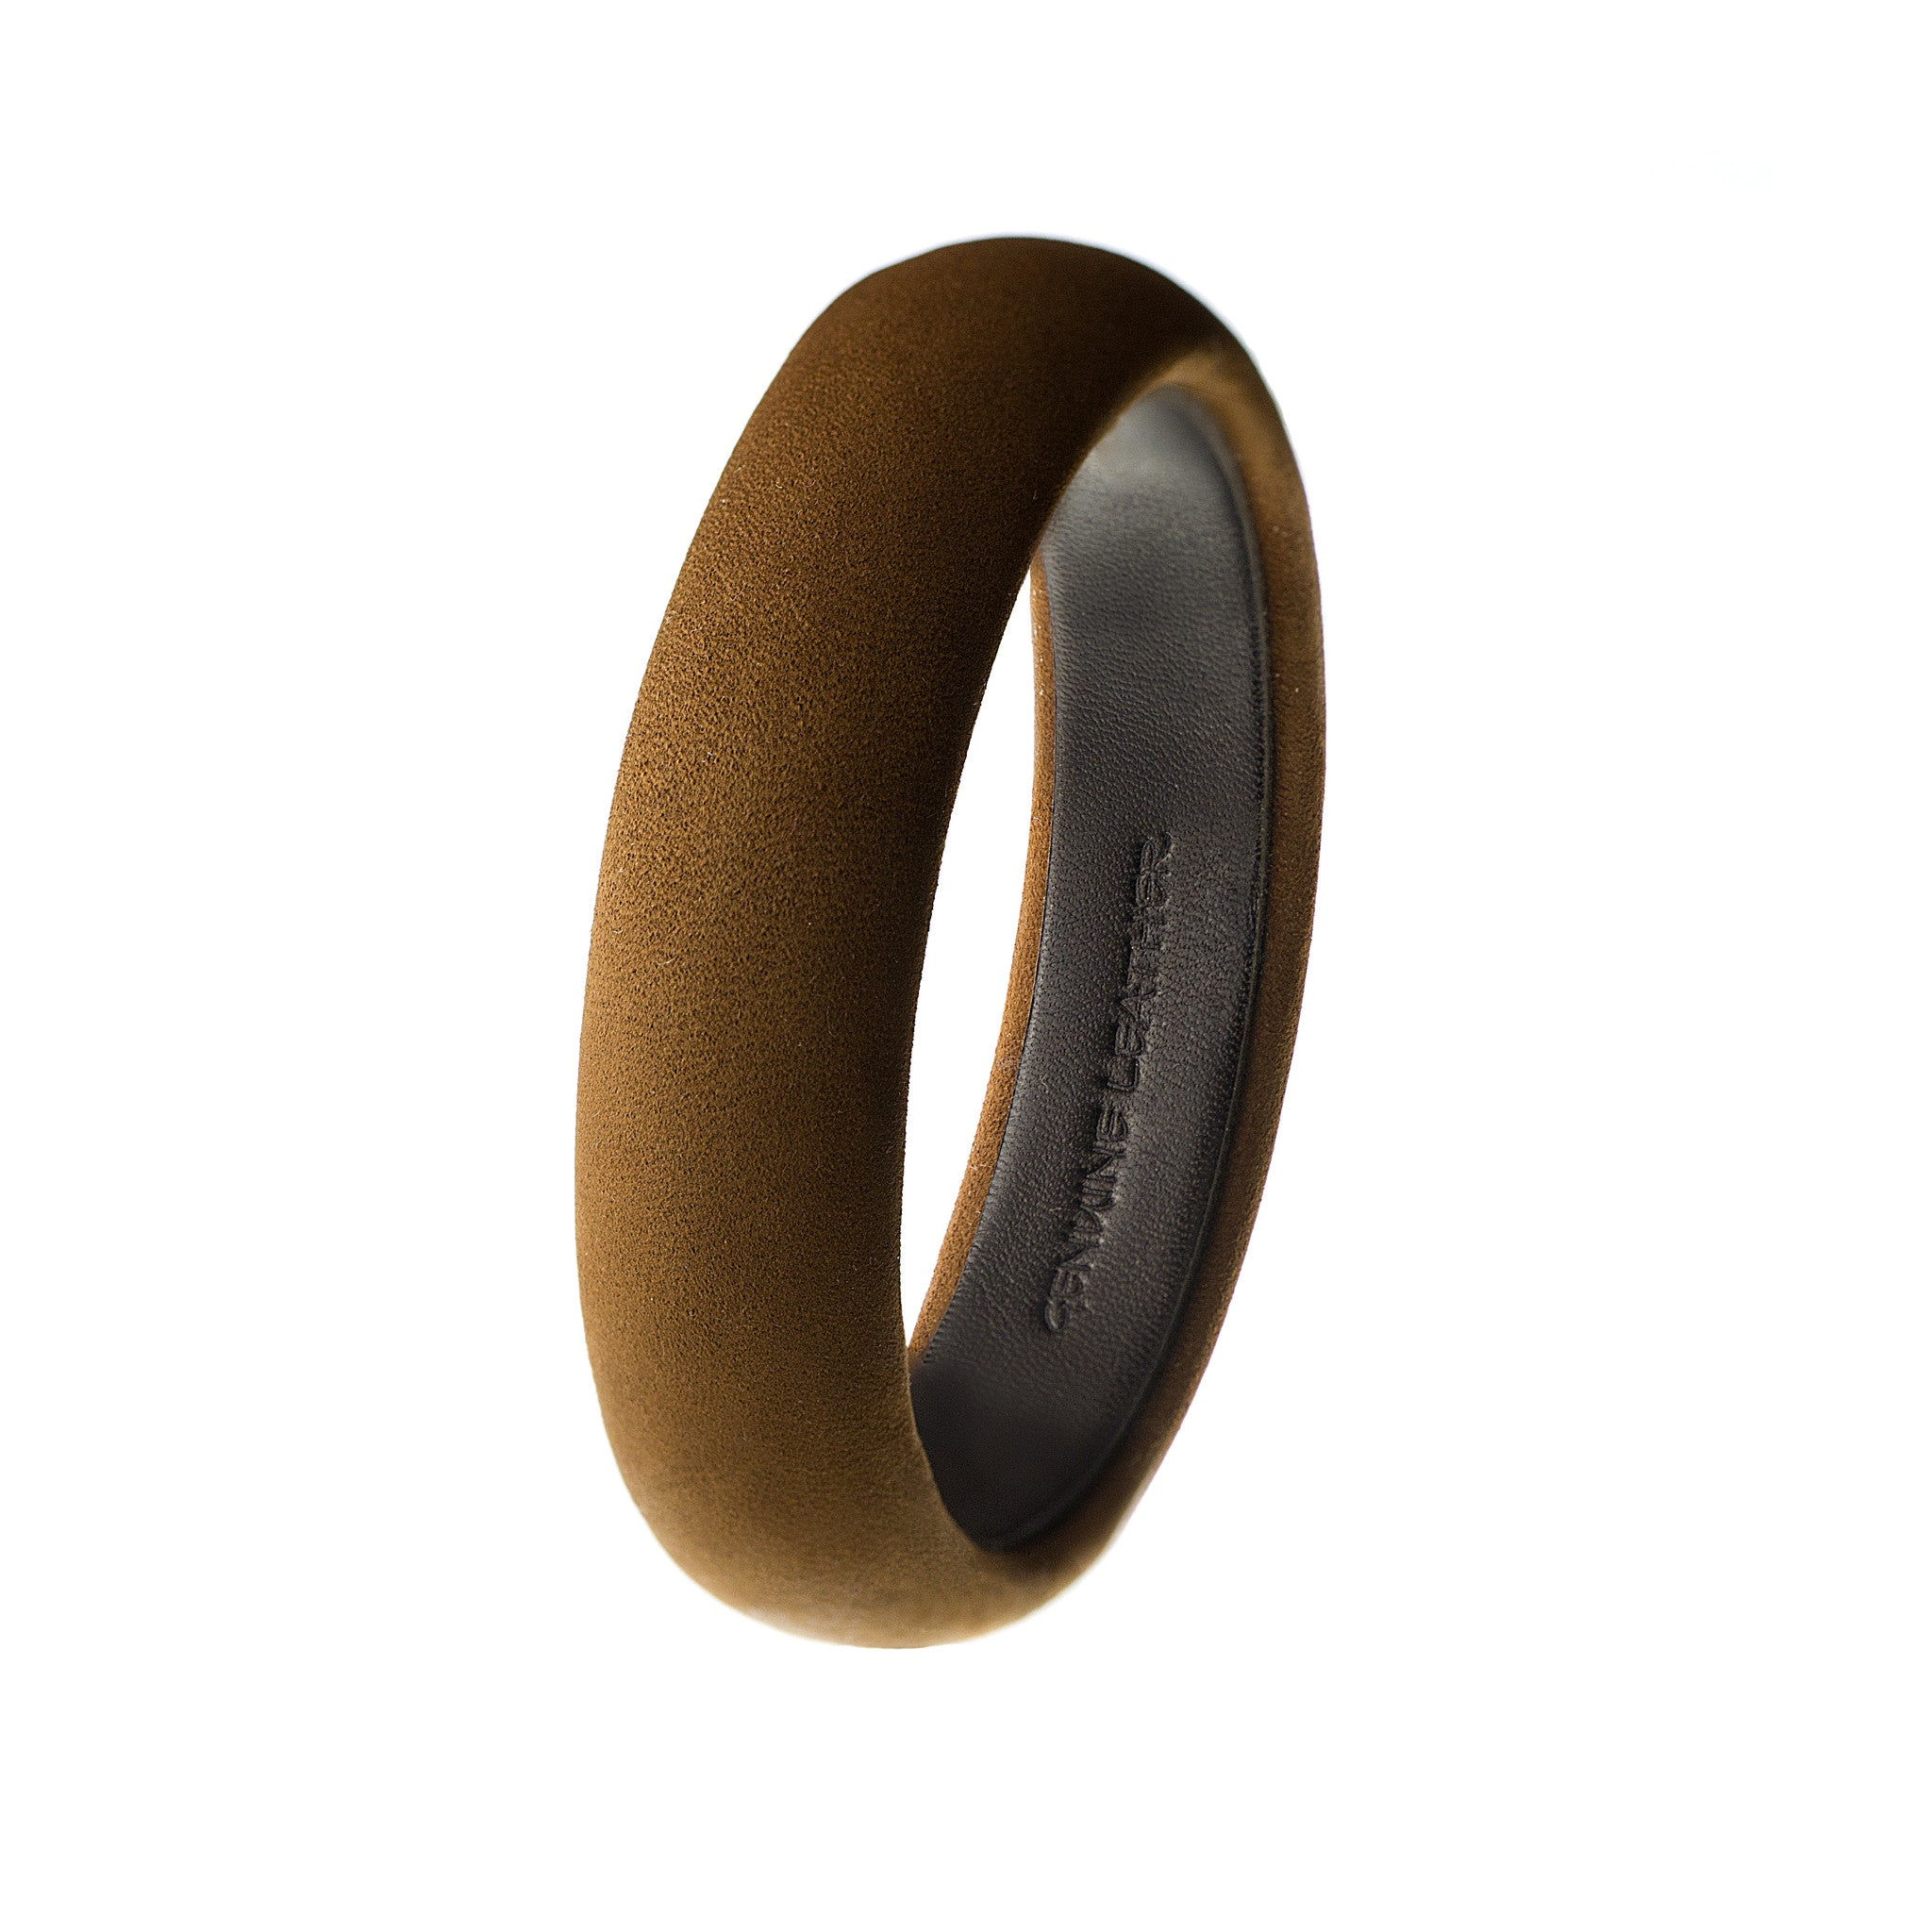 The Aria Bangle ~ Soft Italian Brown Nubuck Suede Leather Bangle Bracelet